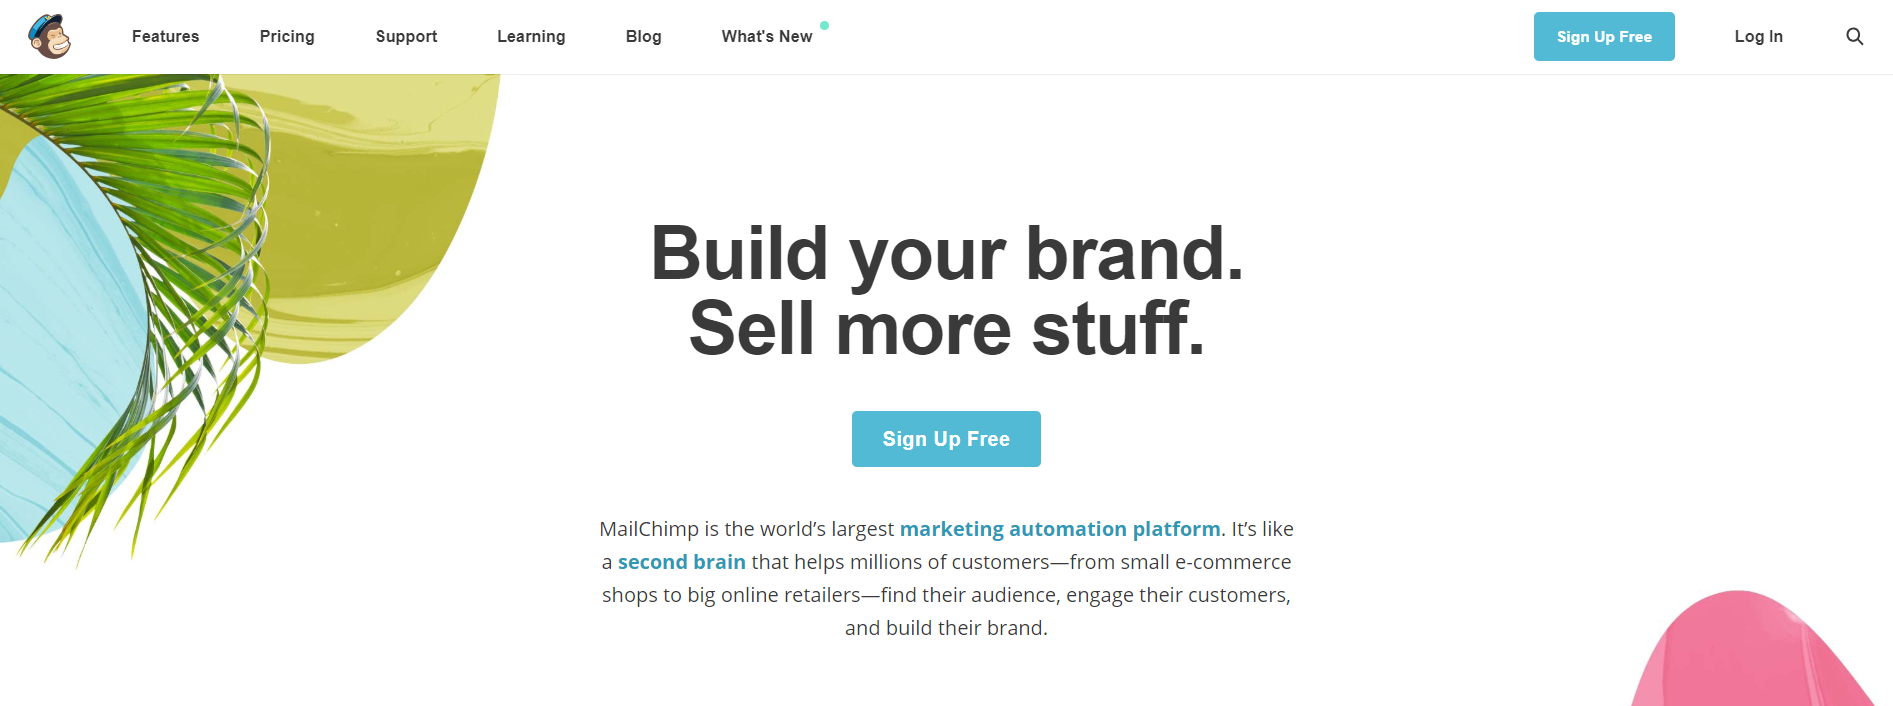 Product Differentiation Strategies | Mailchimp Example